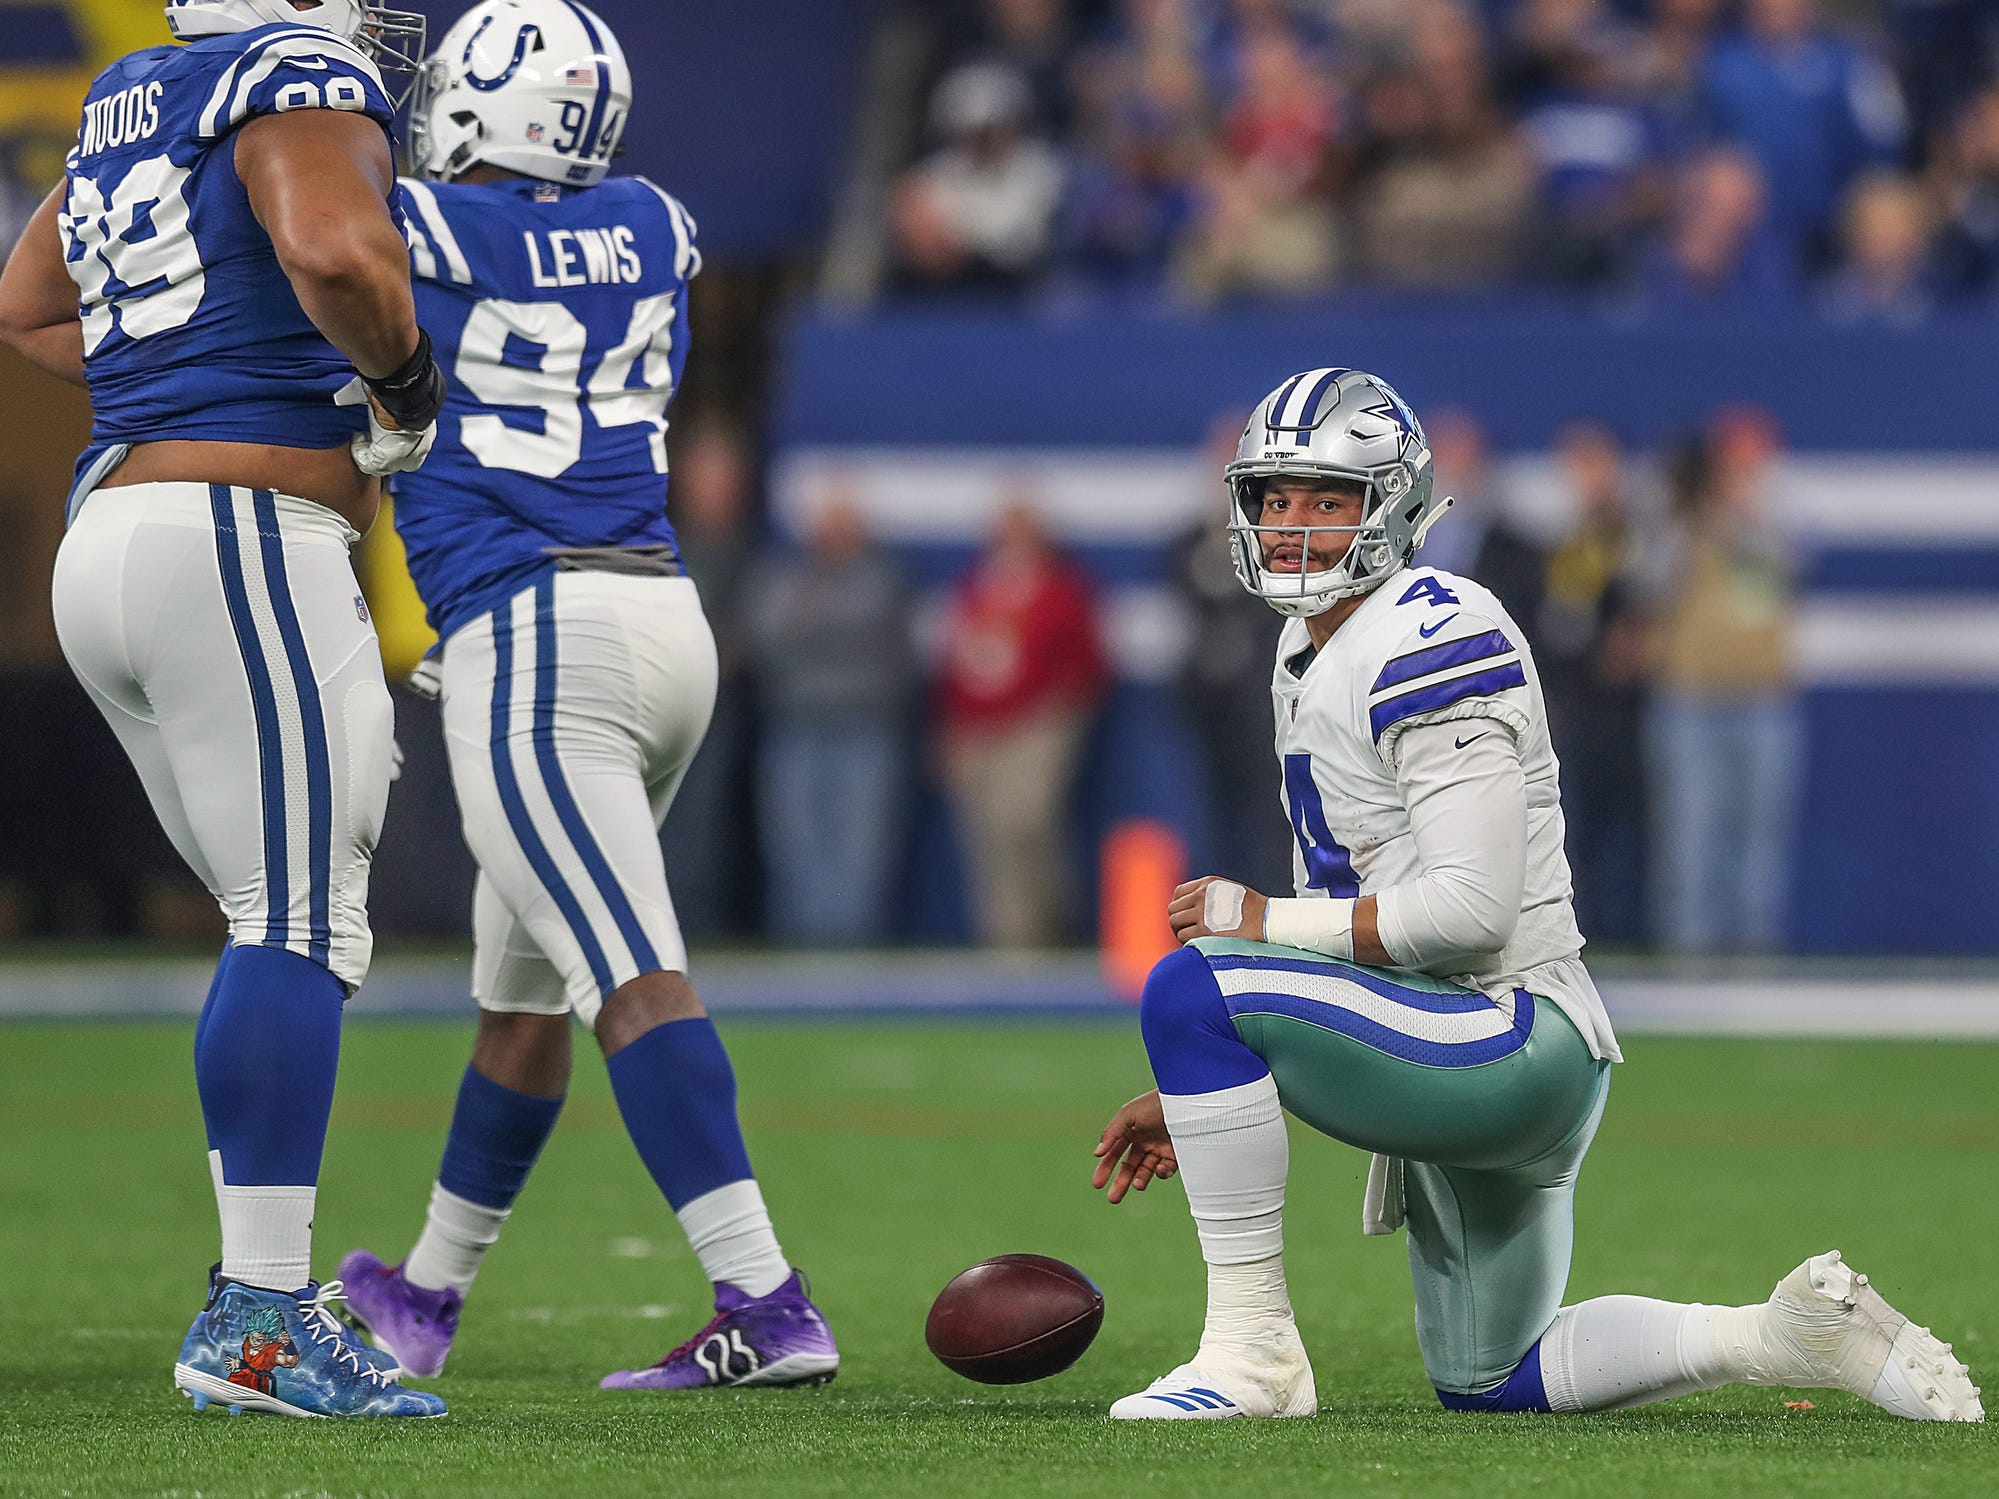 Dallas Cowboys quarterback Dak Prescott (4) gets up slowly while Indianapolis Colts Al Woods (99) and Tyquan Lewis (94) celebrate Lewis' sack in the first half of the game at Lucas Oil Stadium in Indianapolis, Sunday, Dec. 16, 2018.